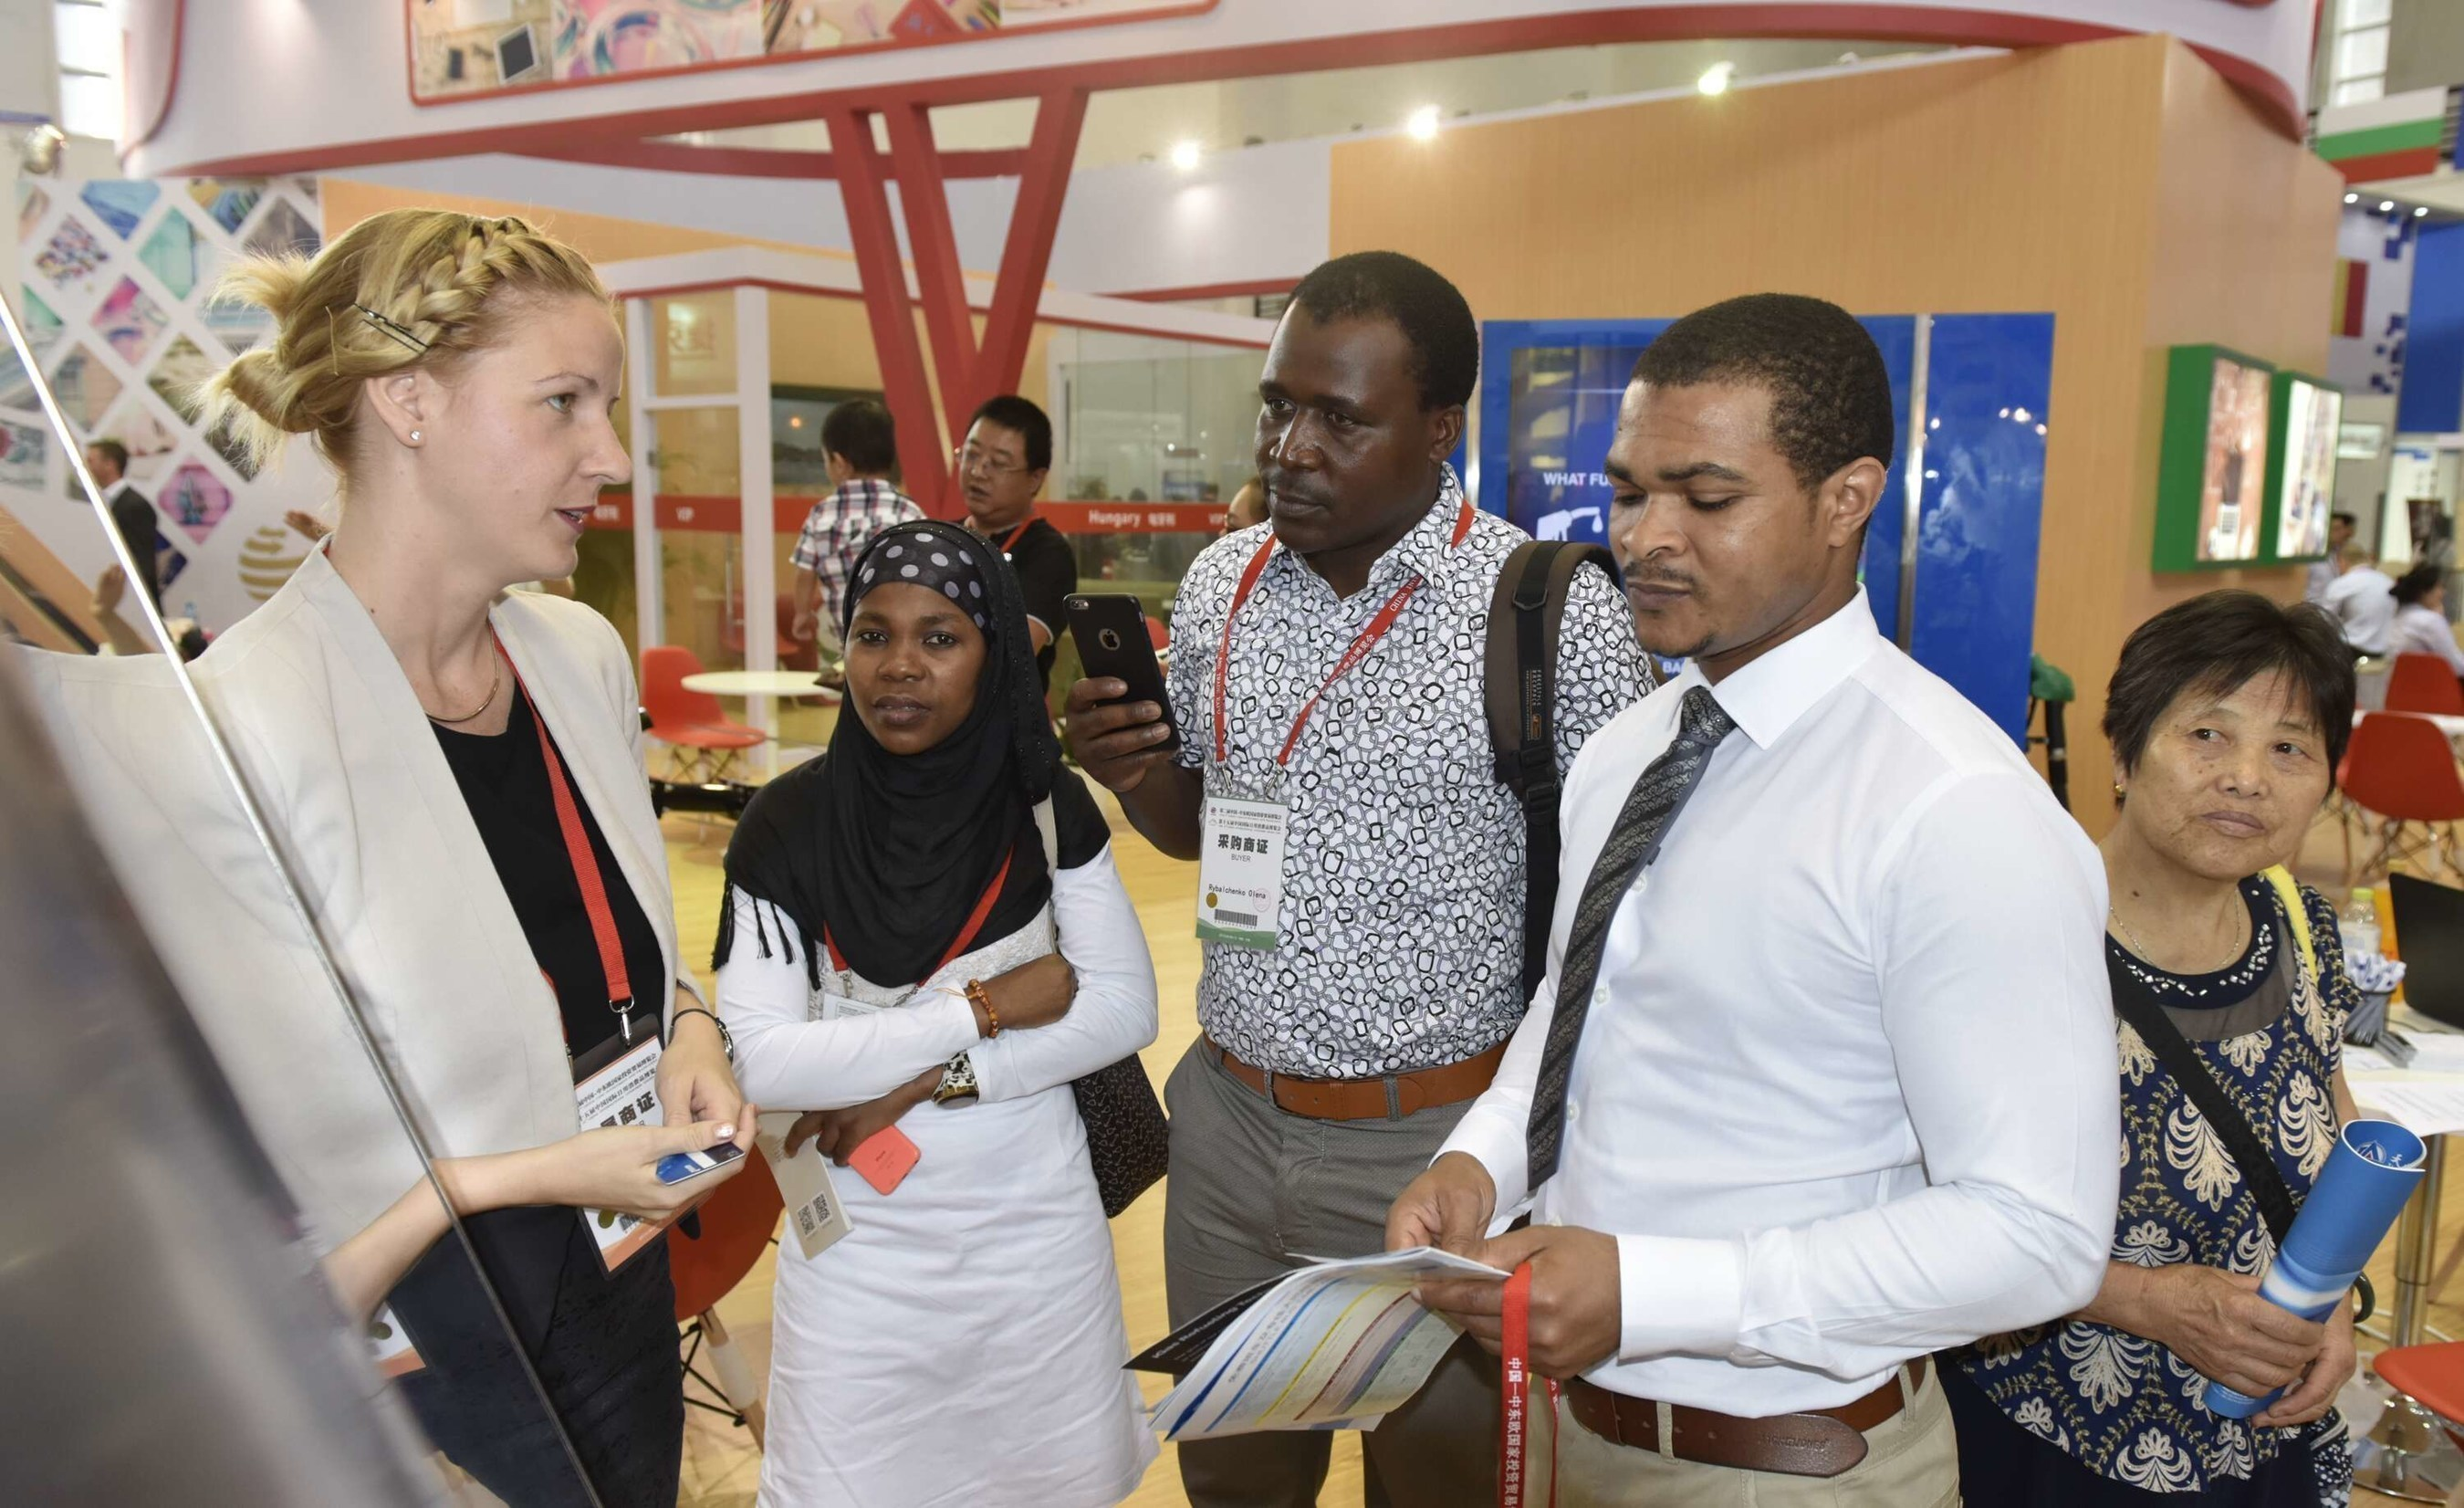 Exhibitors from CEE countries were introducing their Projects at the CCEEC Expo